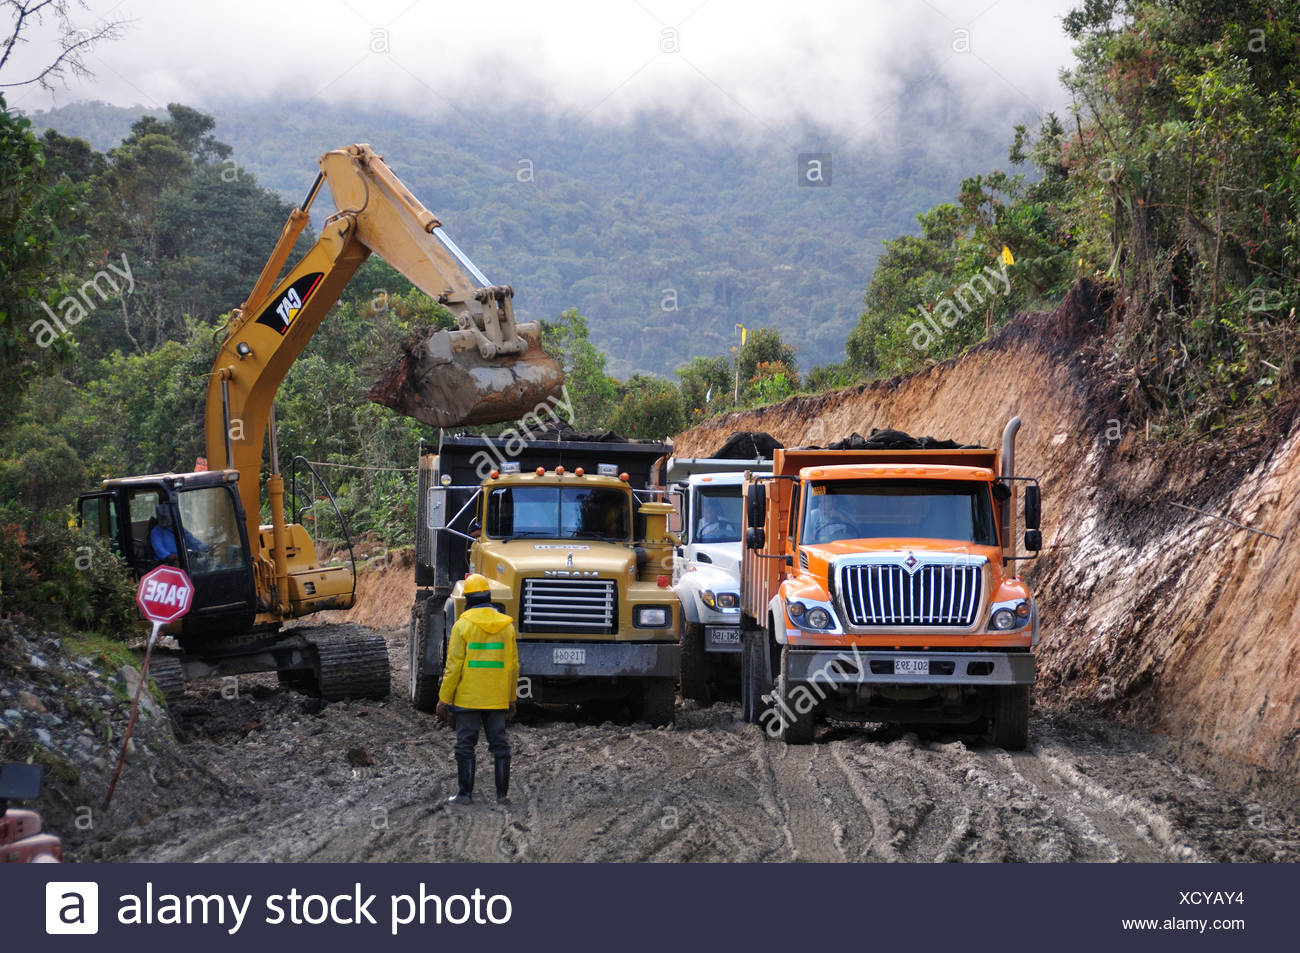 Road, construction, slide, mud, Route, Totoro, Inza, Colombia, South America, work, trucks - Stock Image